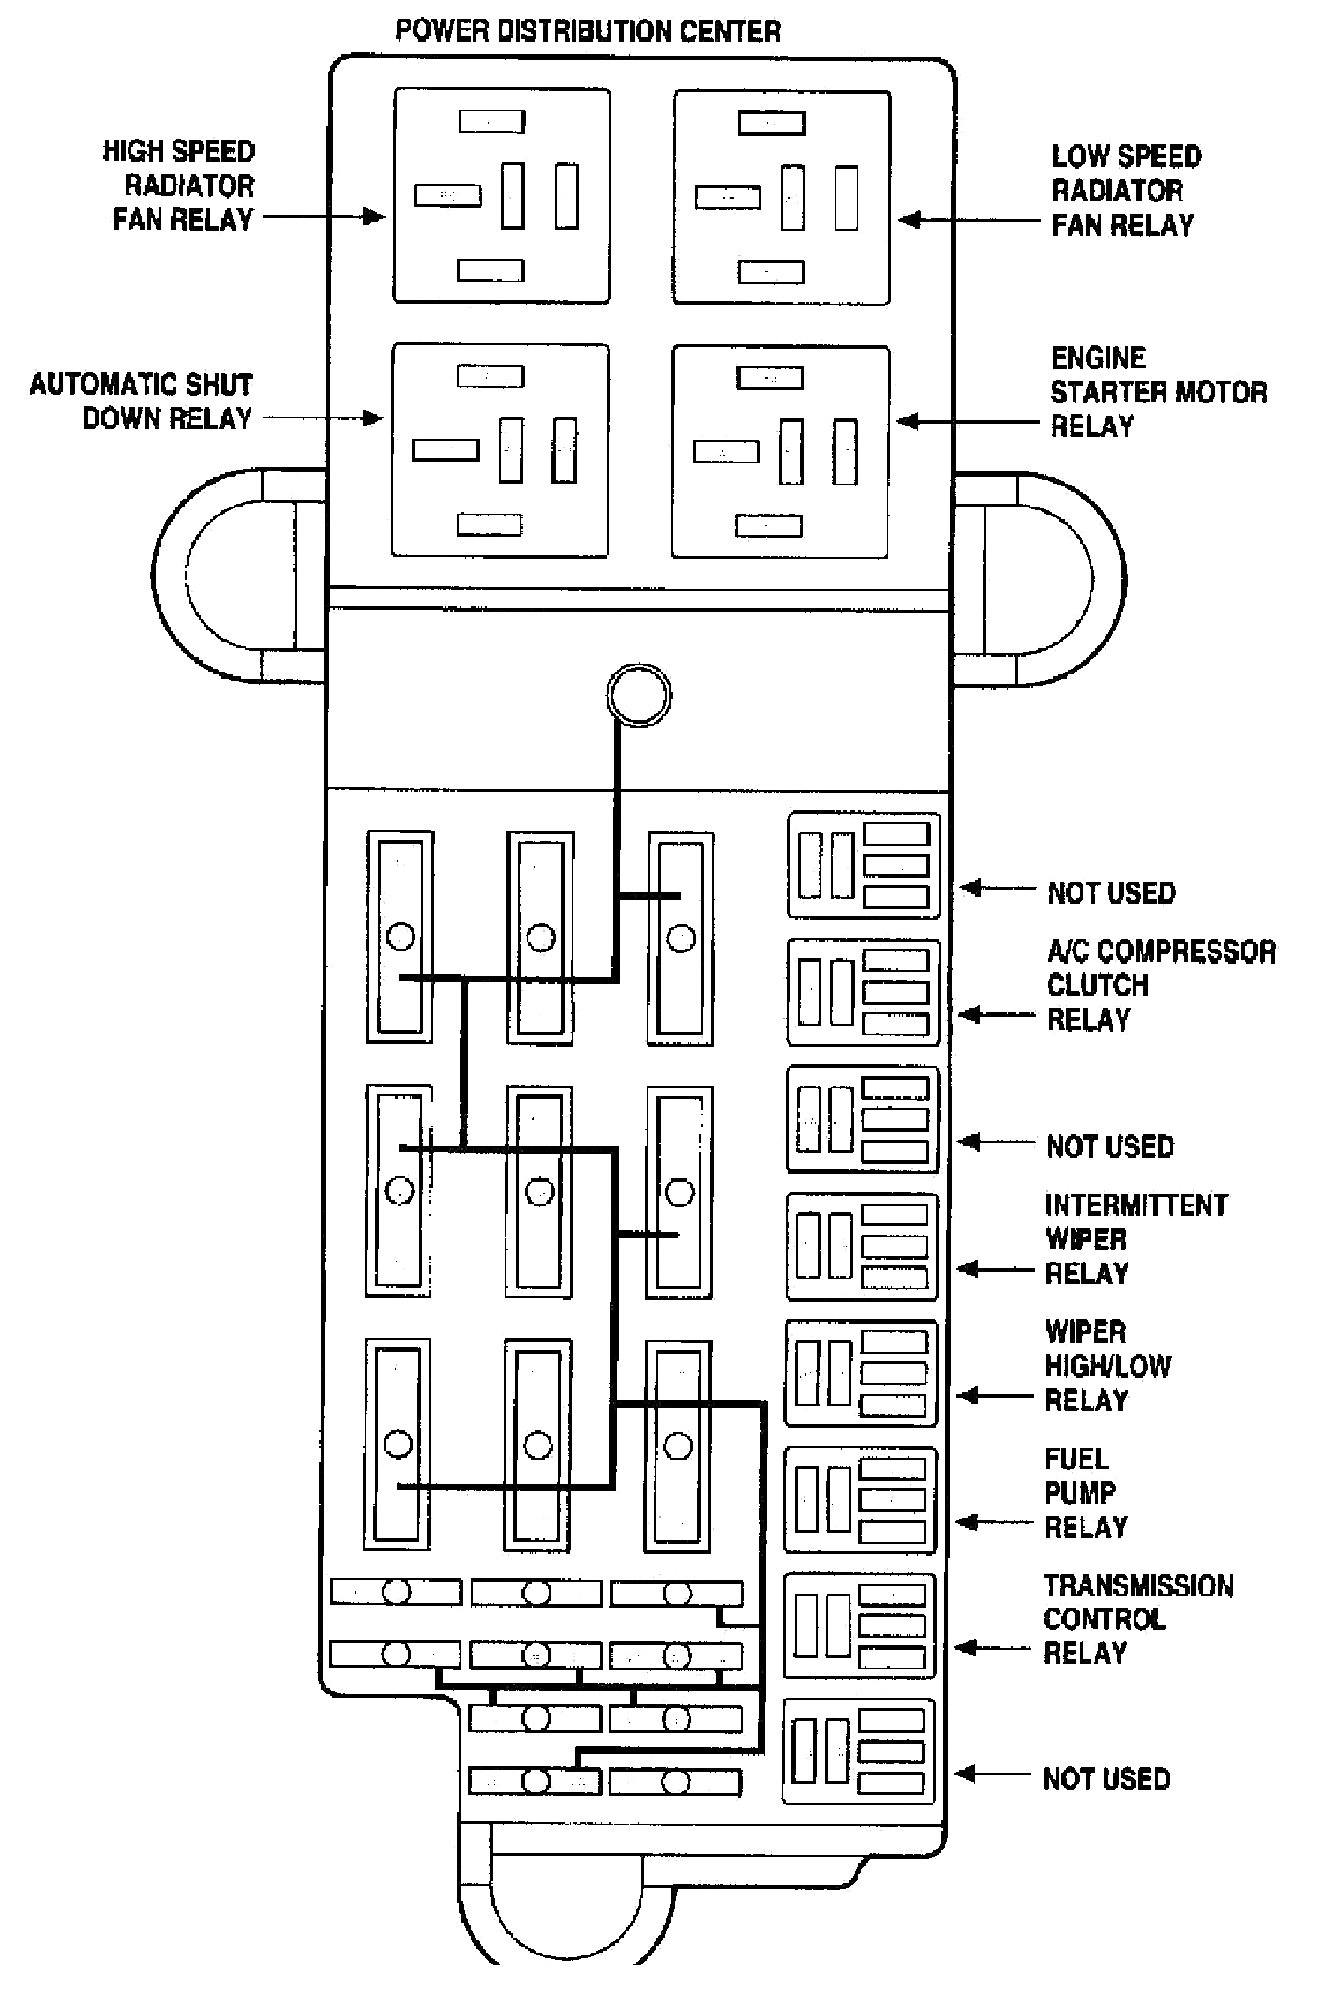 1999 Chrysler Sebring Fuse Diagram Wiring Library 2000 Box Power Distribution Diagrams Diy Enthusiasts